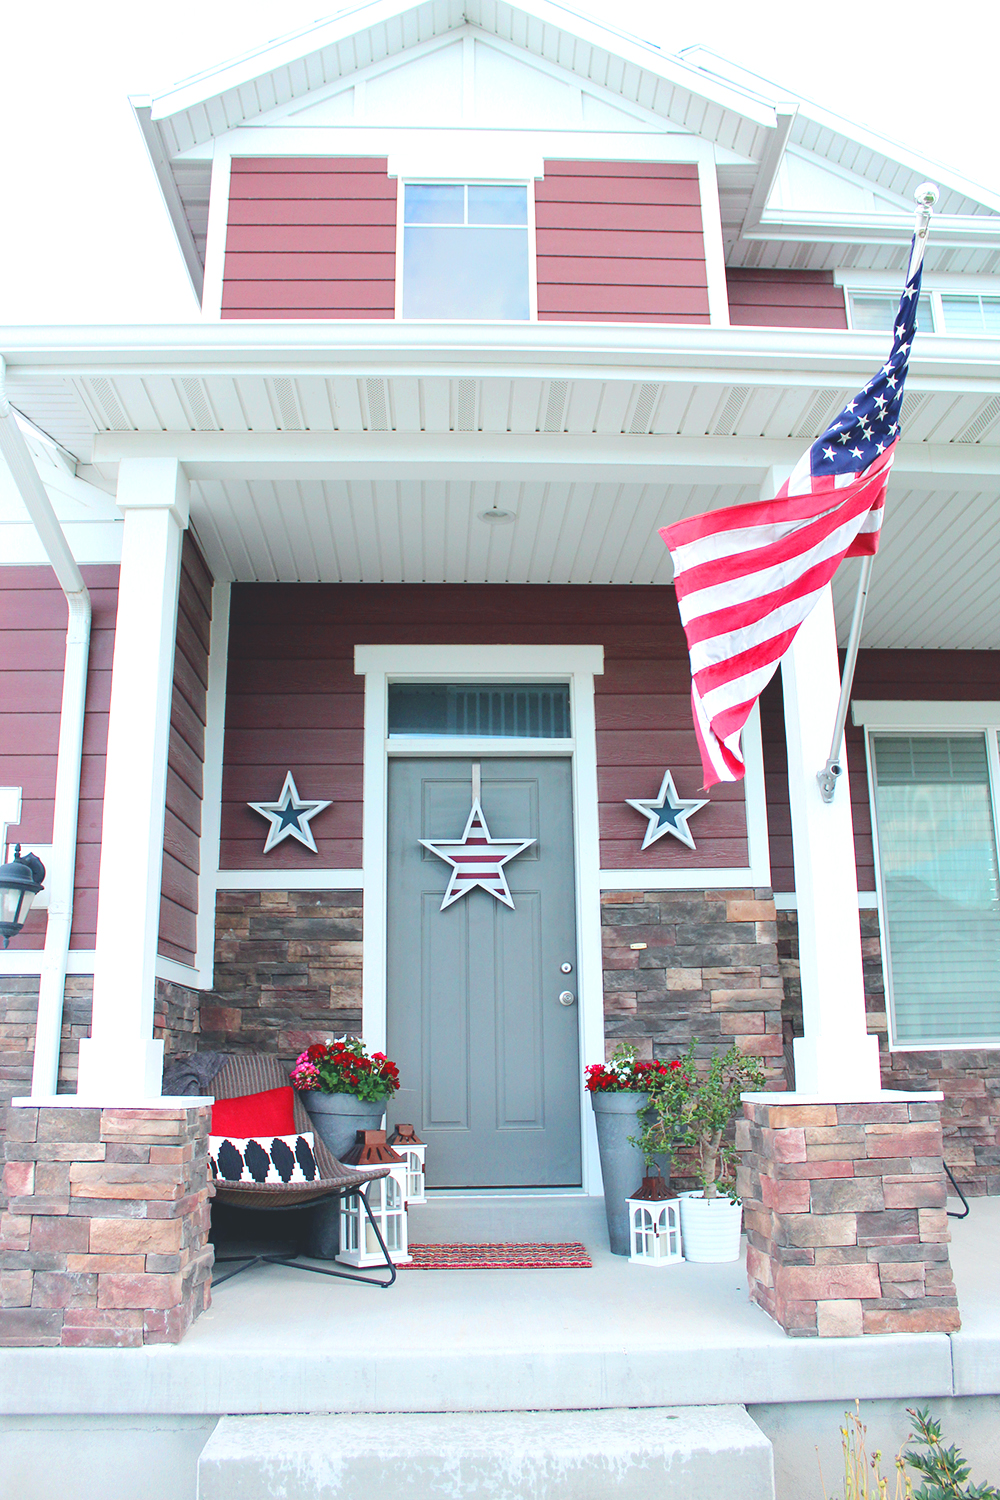 Home Depot Wood Doors Exterior: Home Depot Collab: 4th Of July Wood Stars